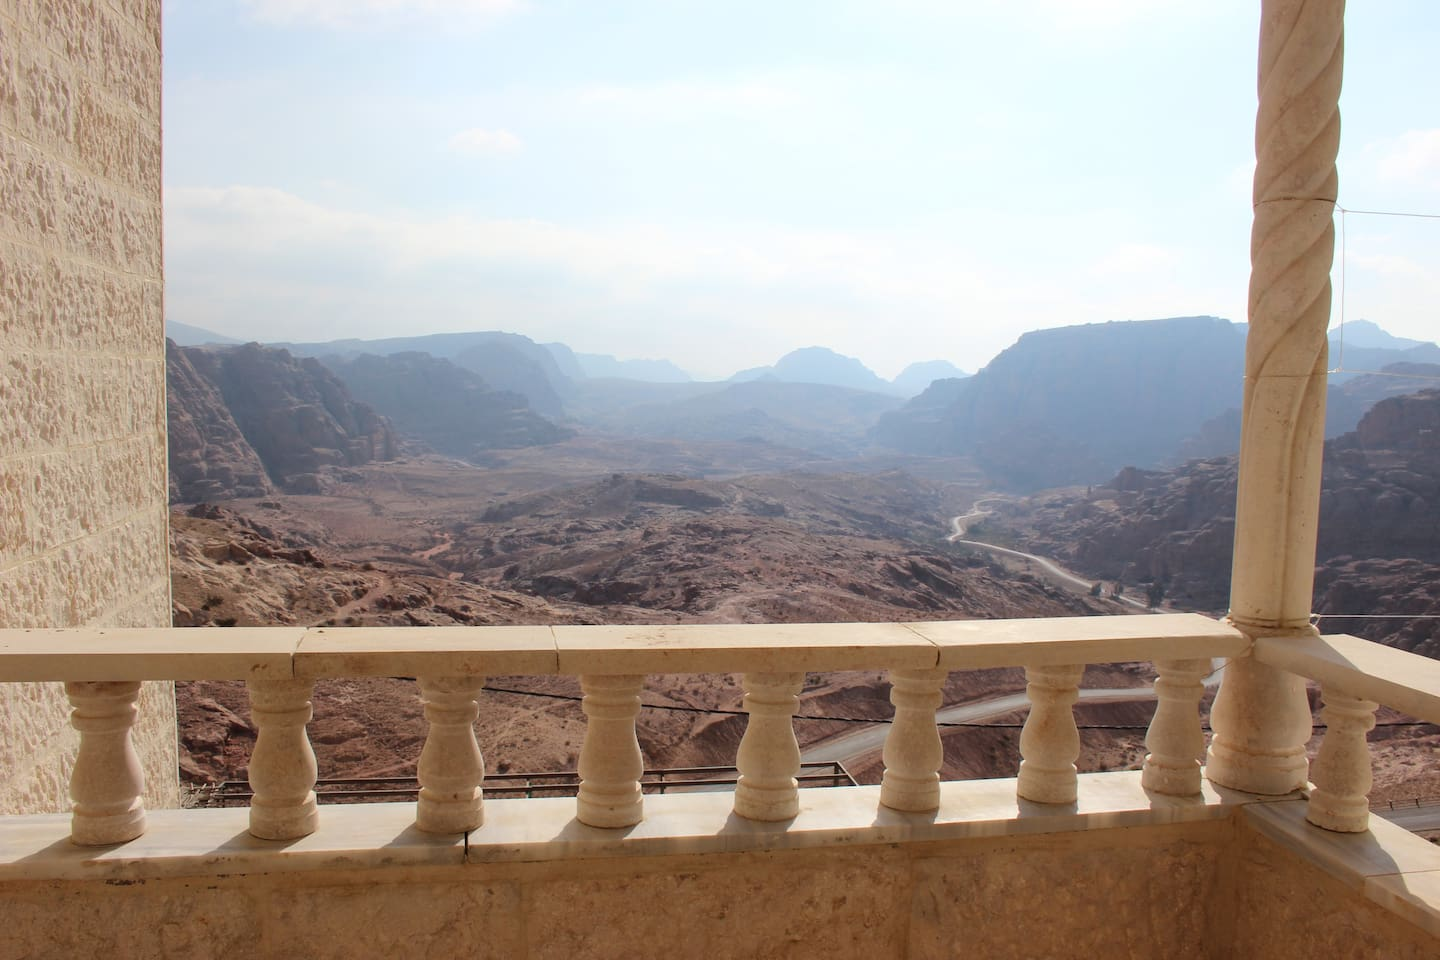 View over Petra from our balcony